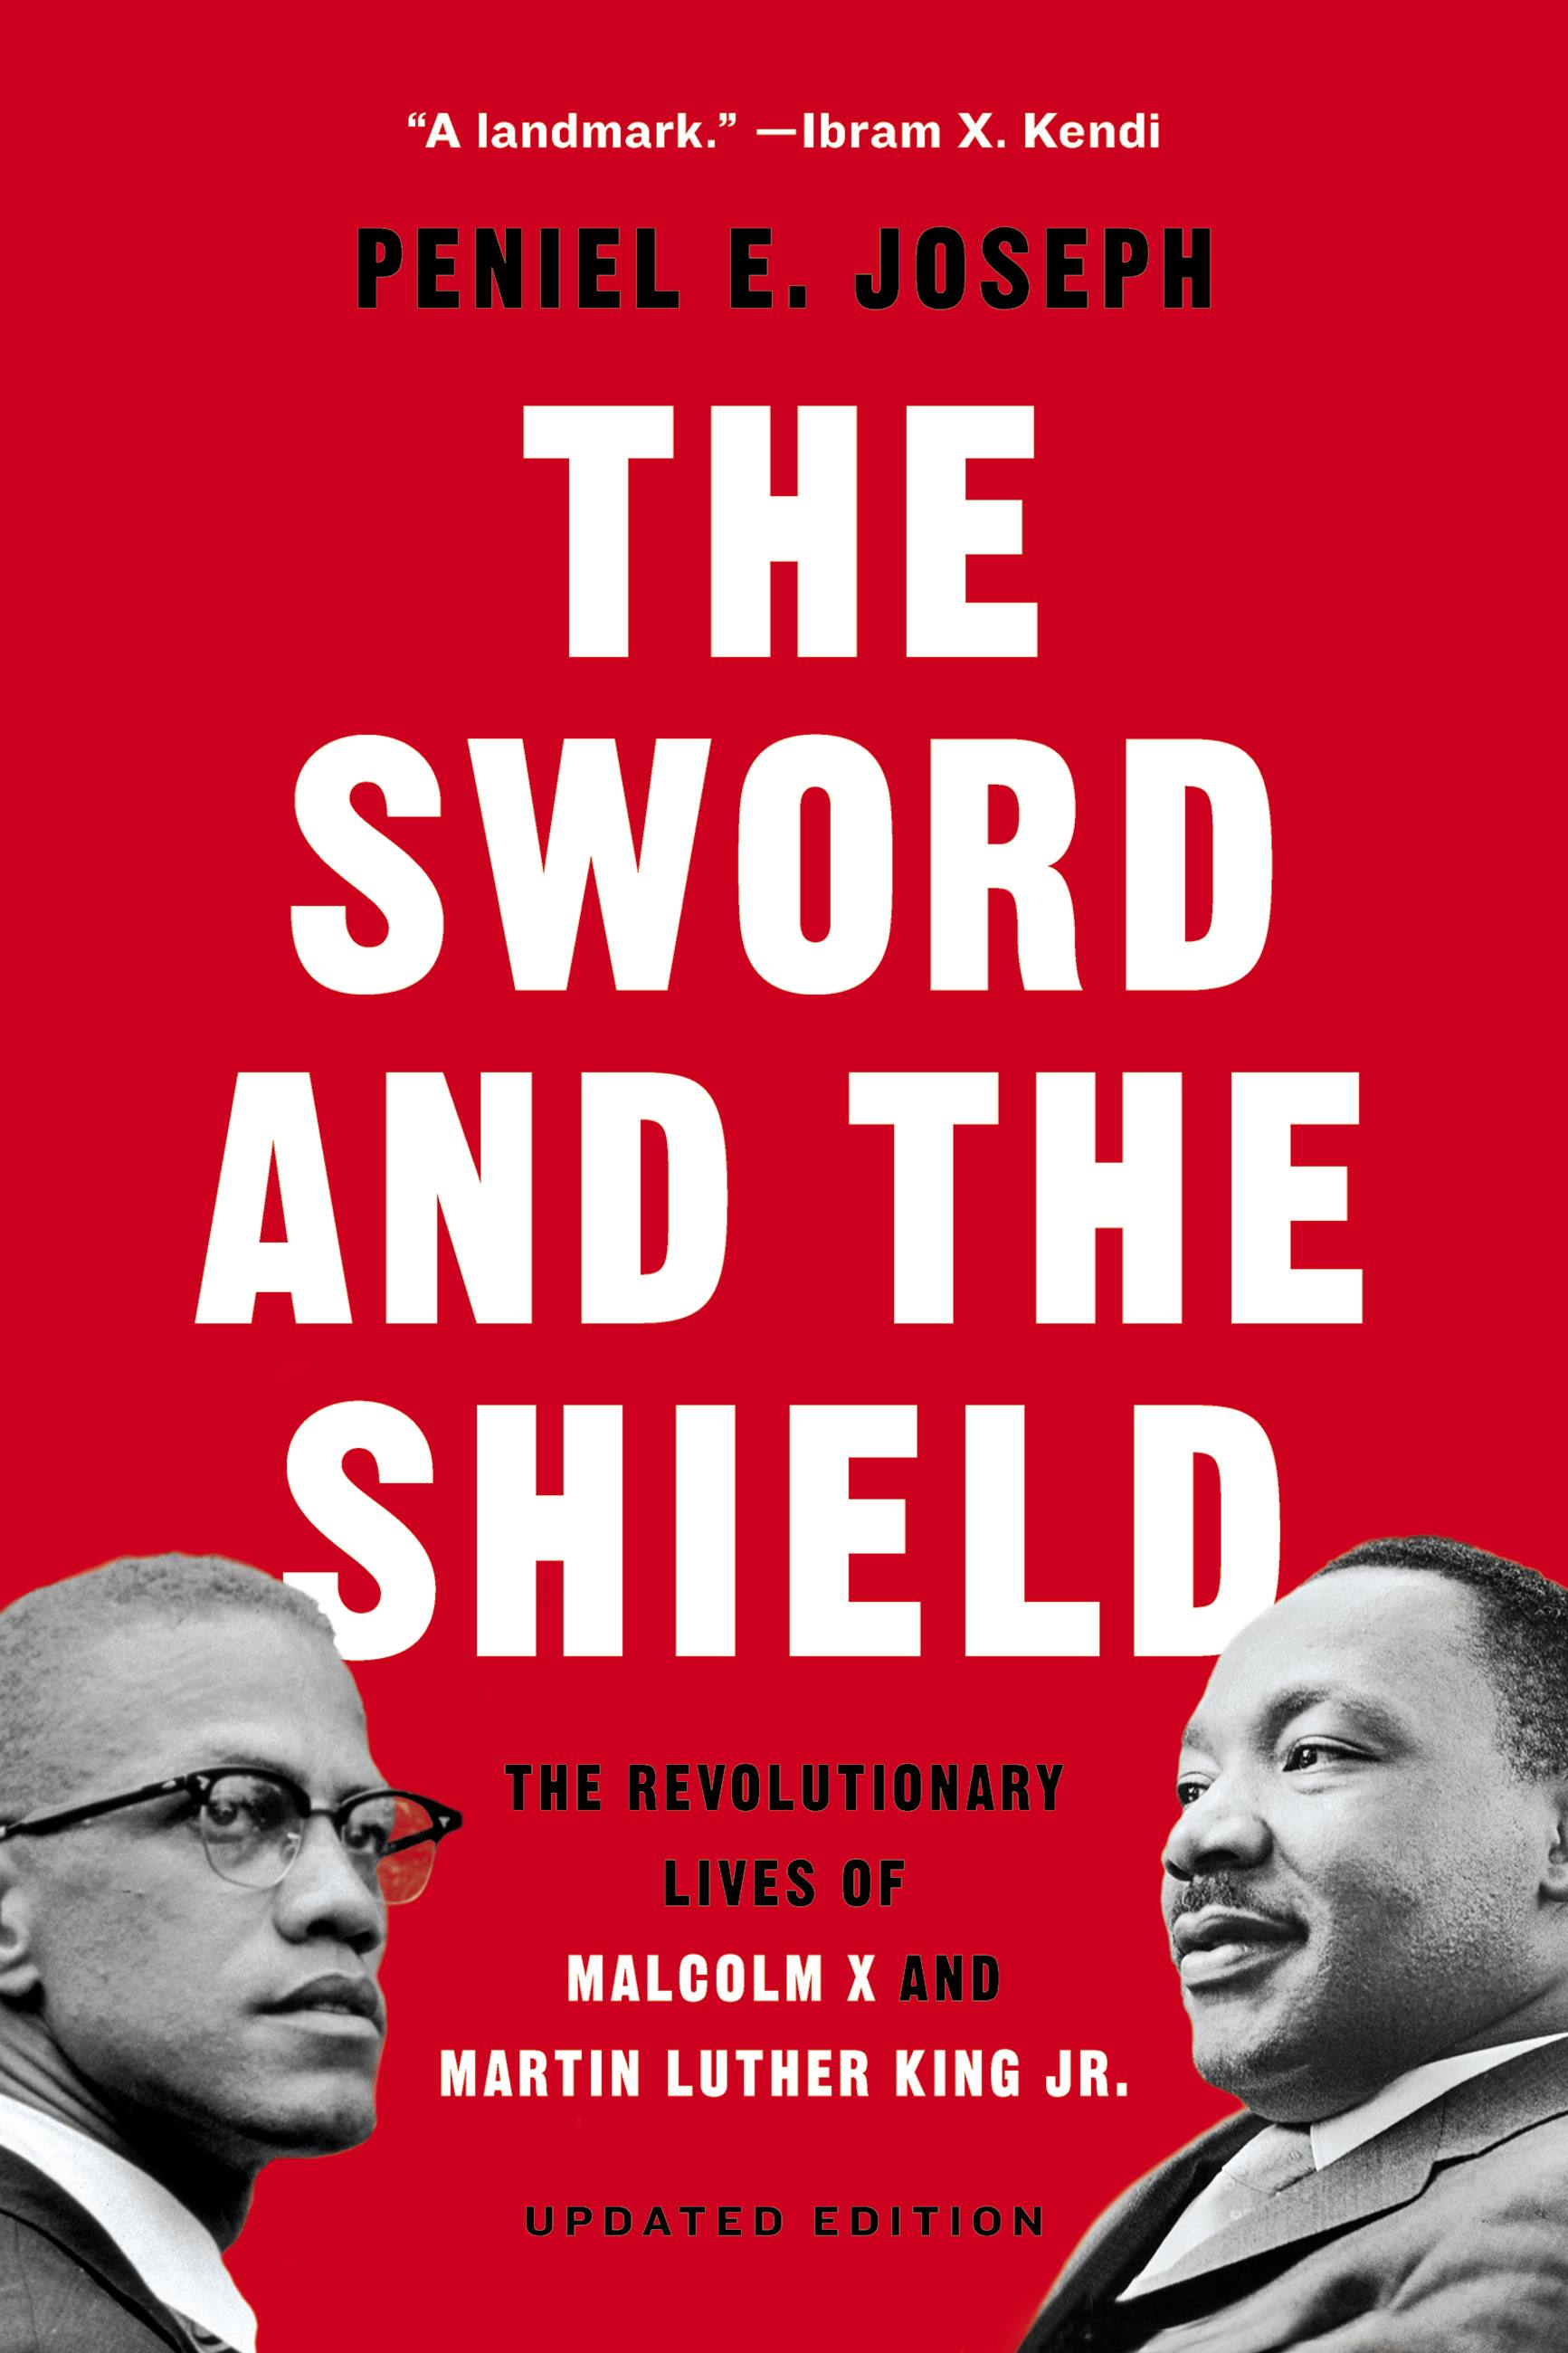 The Sword and the Shield The Revolutionary Lives of Malcolm X and Martin Luther King Jr.